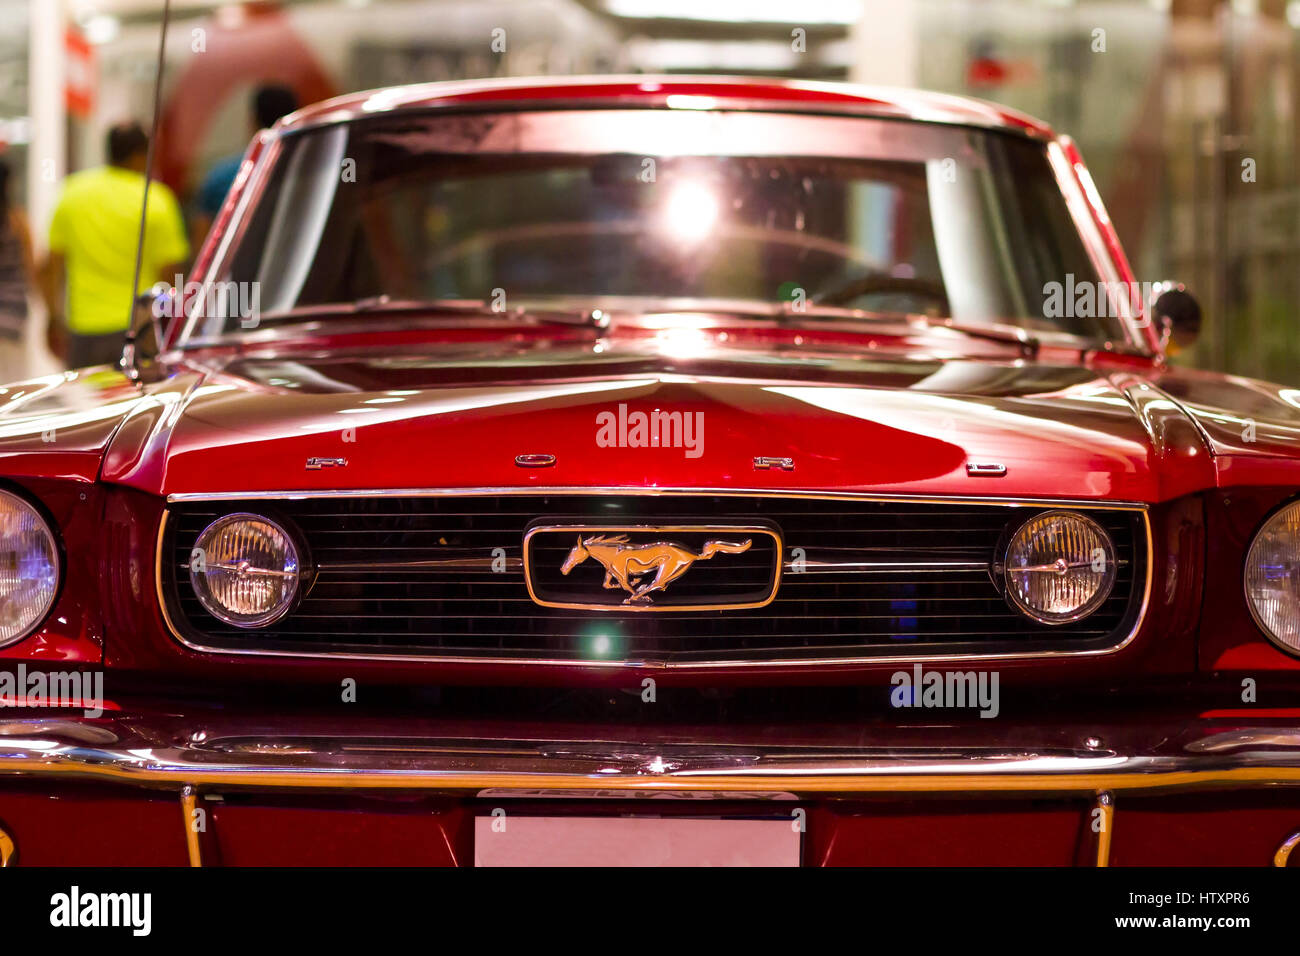 1965 Ford Mustang Fastback red  Front view  Exhibition of classic     1965 Ford Mustang Fastback red  Front view  Exhibition of classic and  antique cars